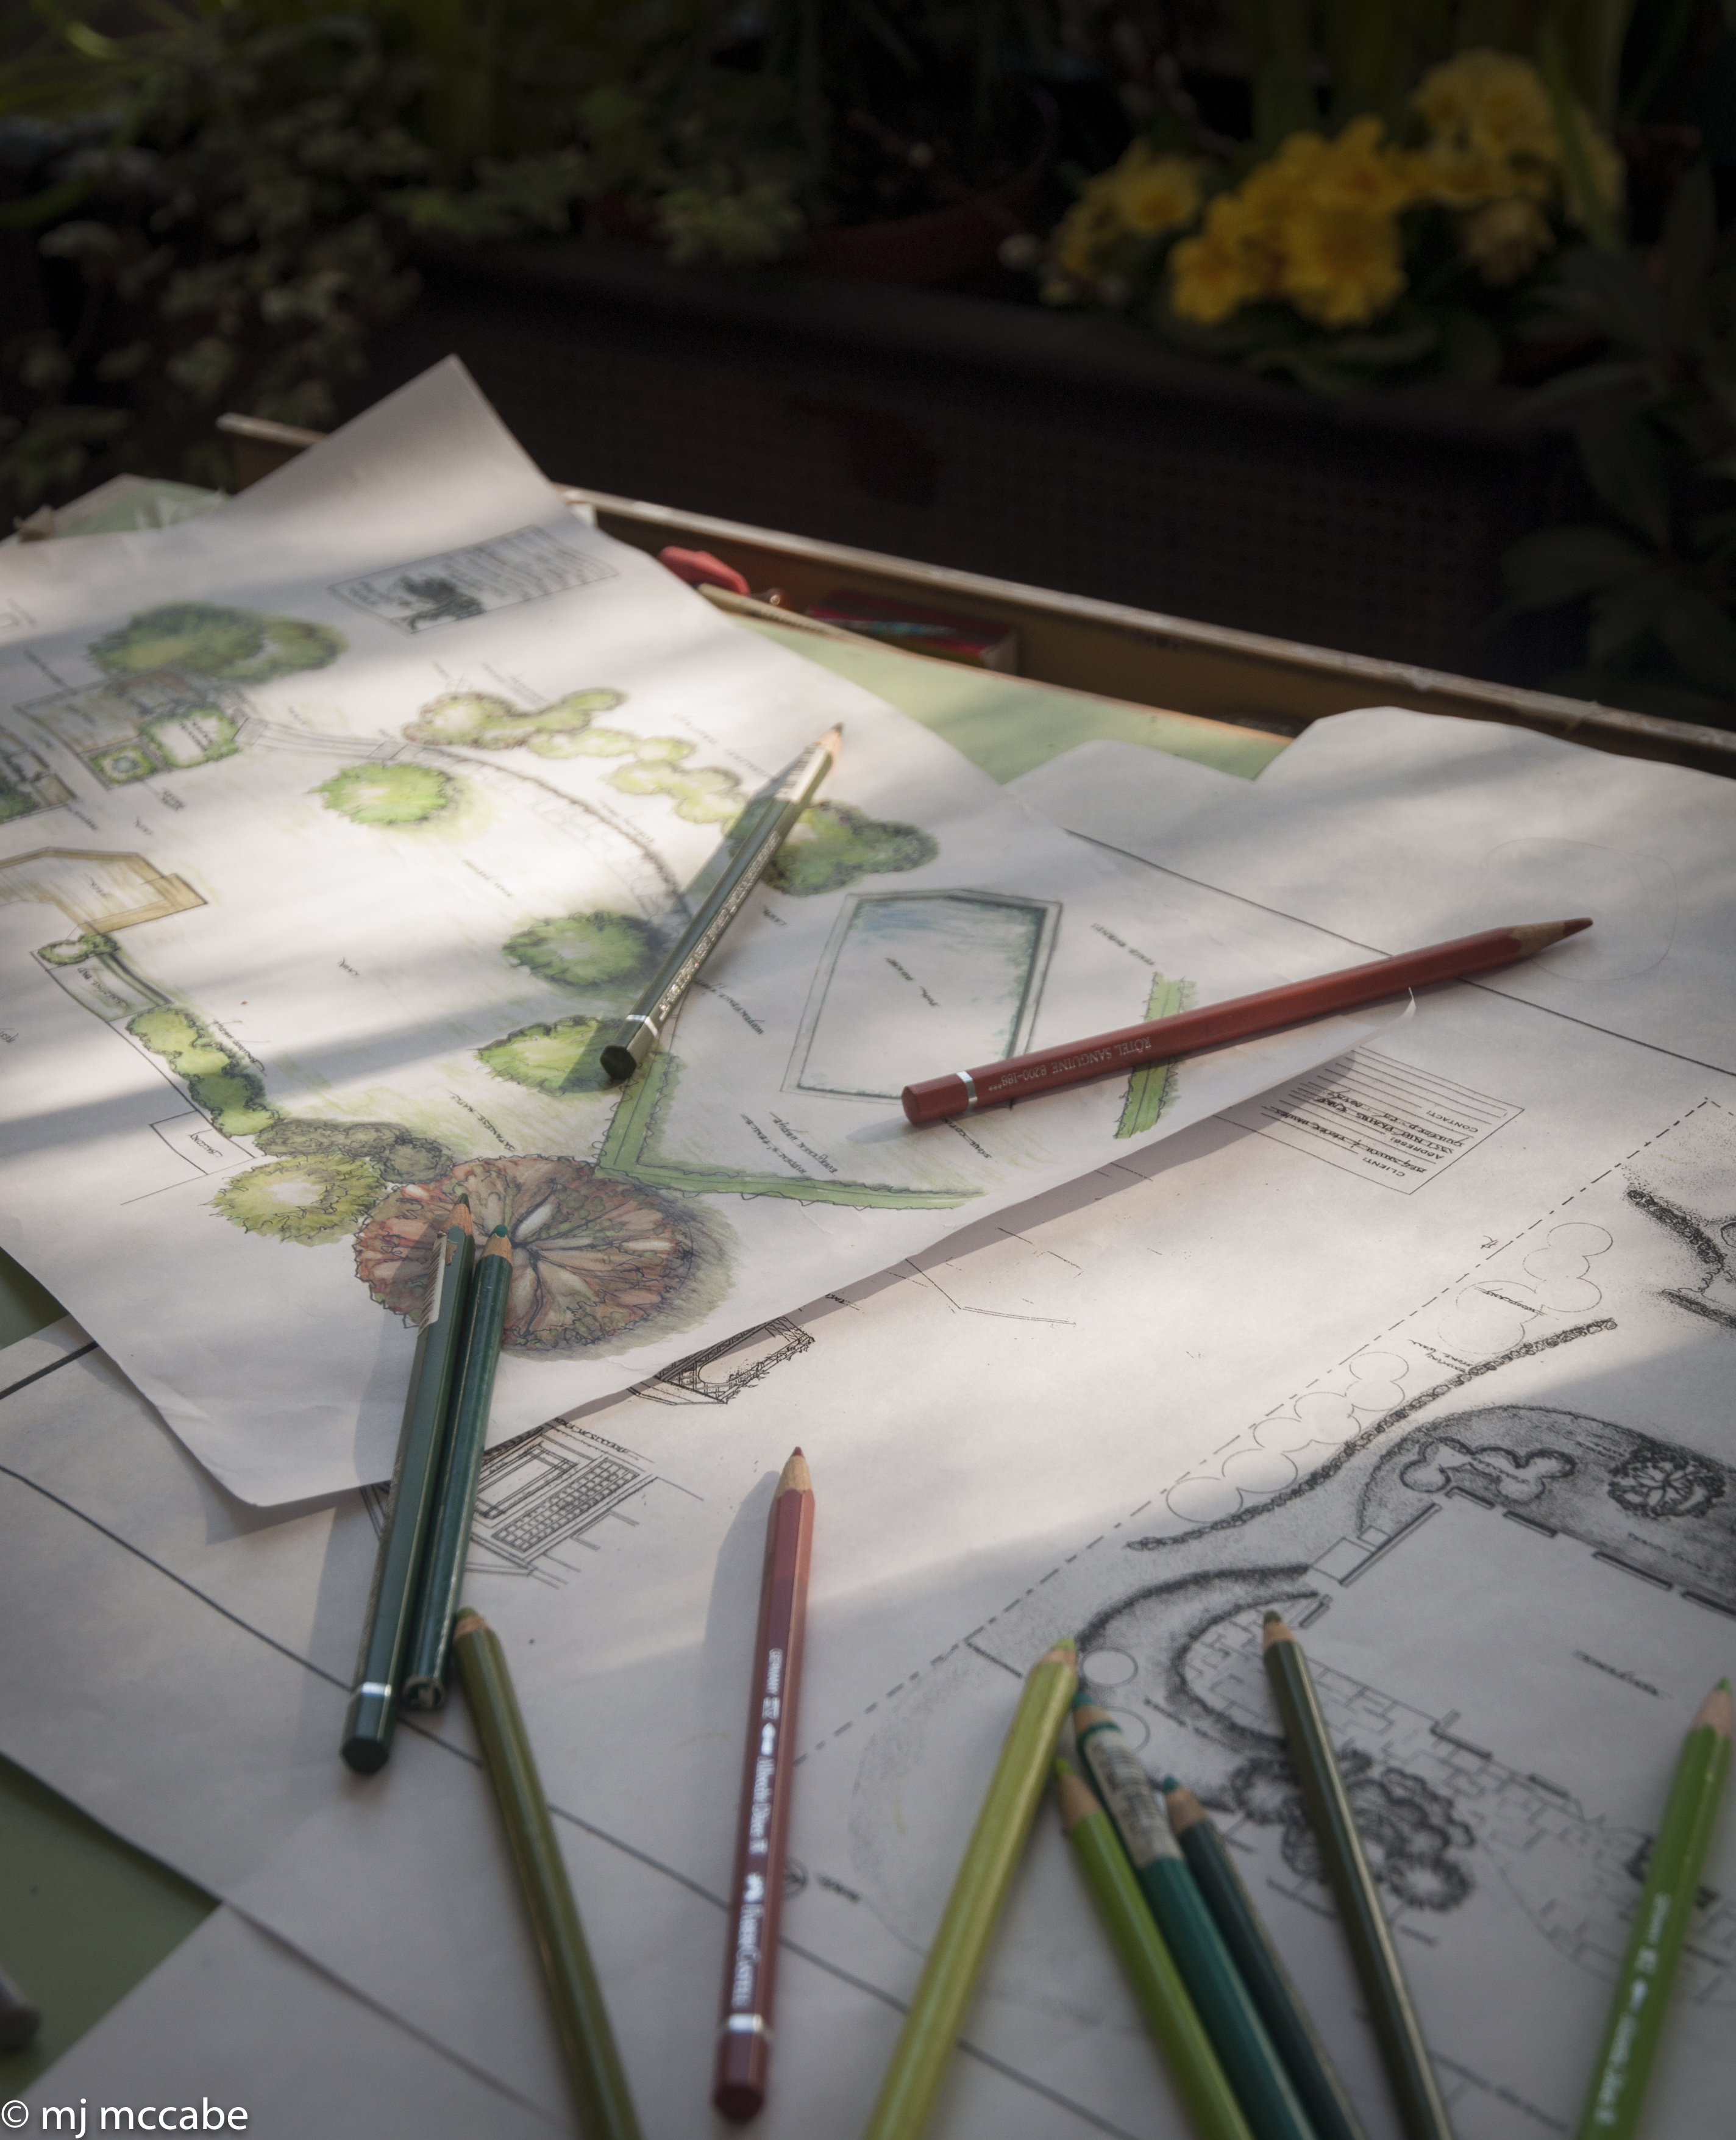 Starting from scratch create the landscape of your for Designing a garden from scratch